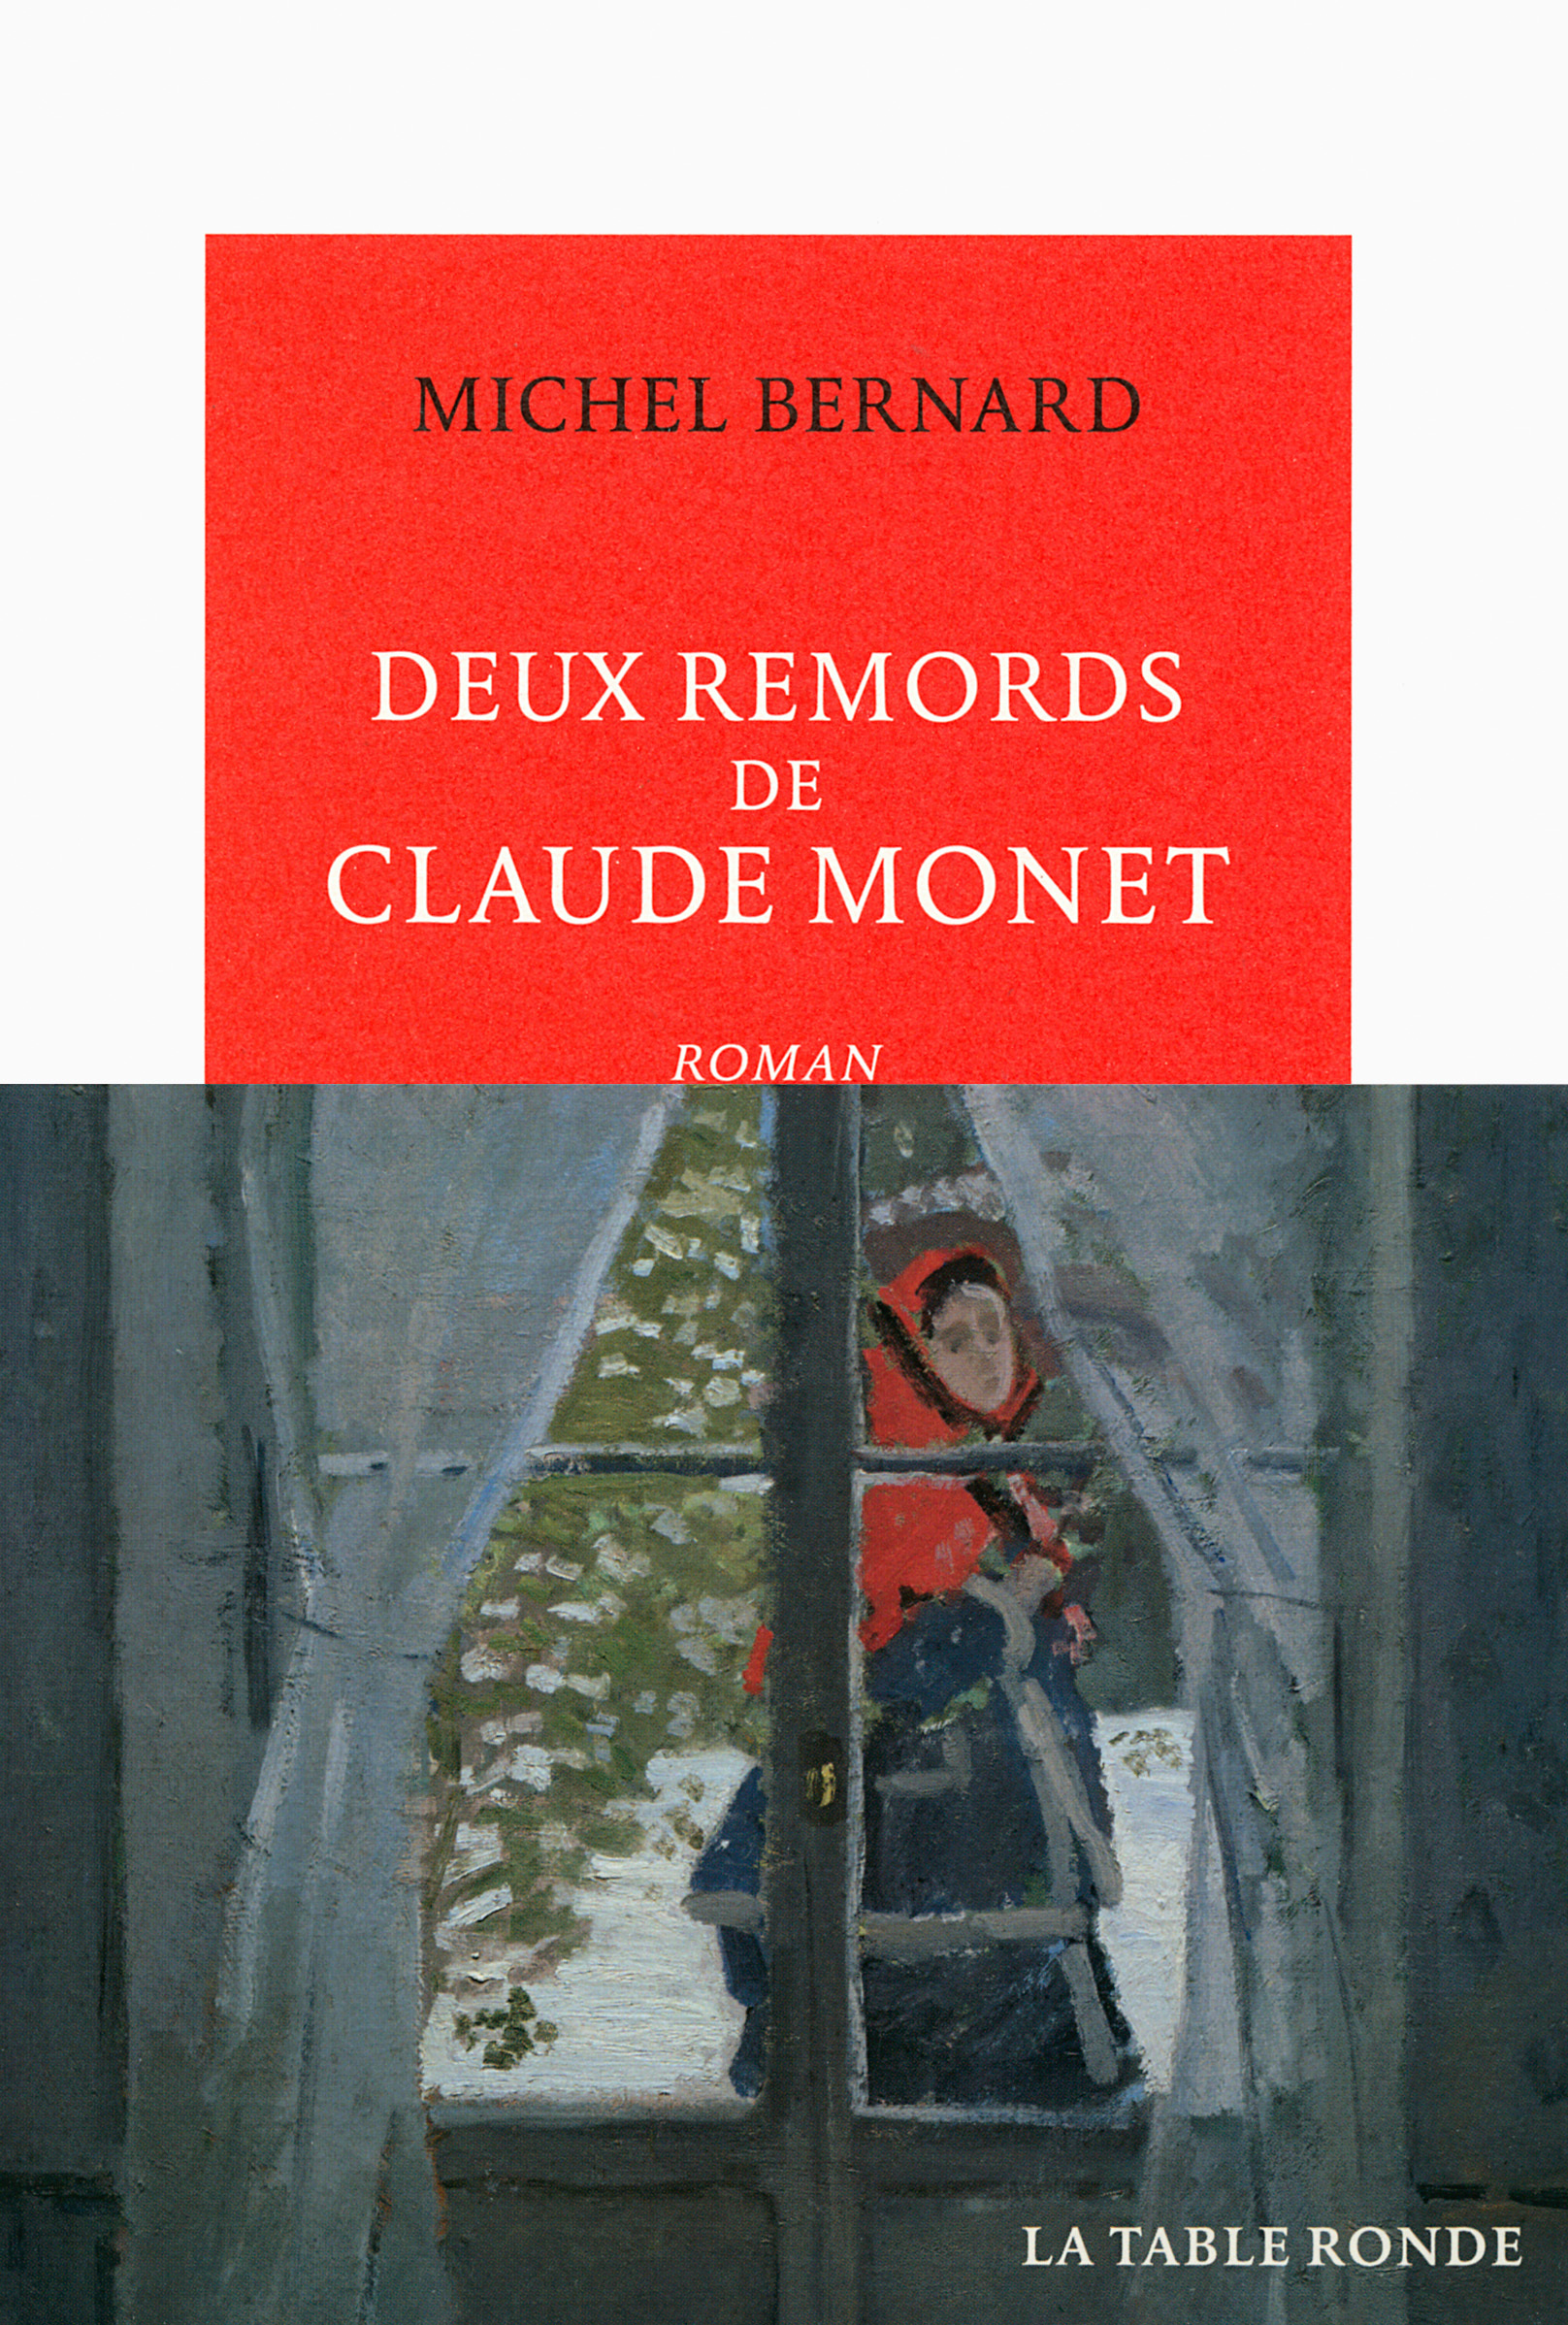 DEUX REMORDS DE CLAUDE MONET